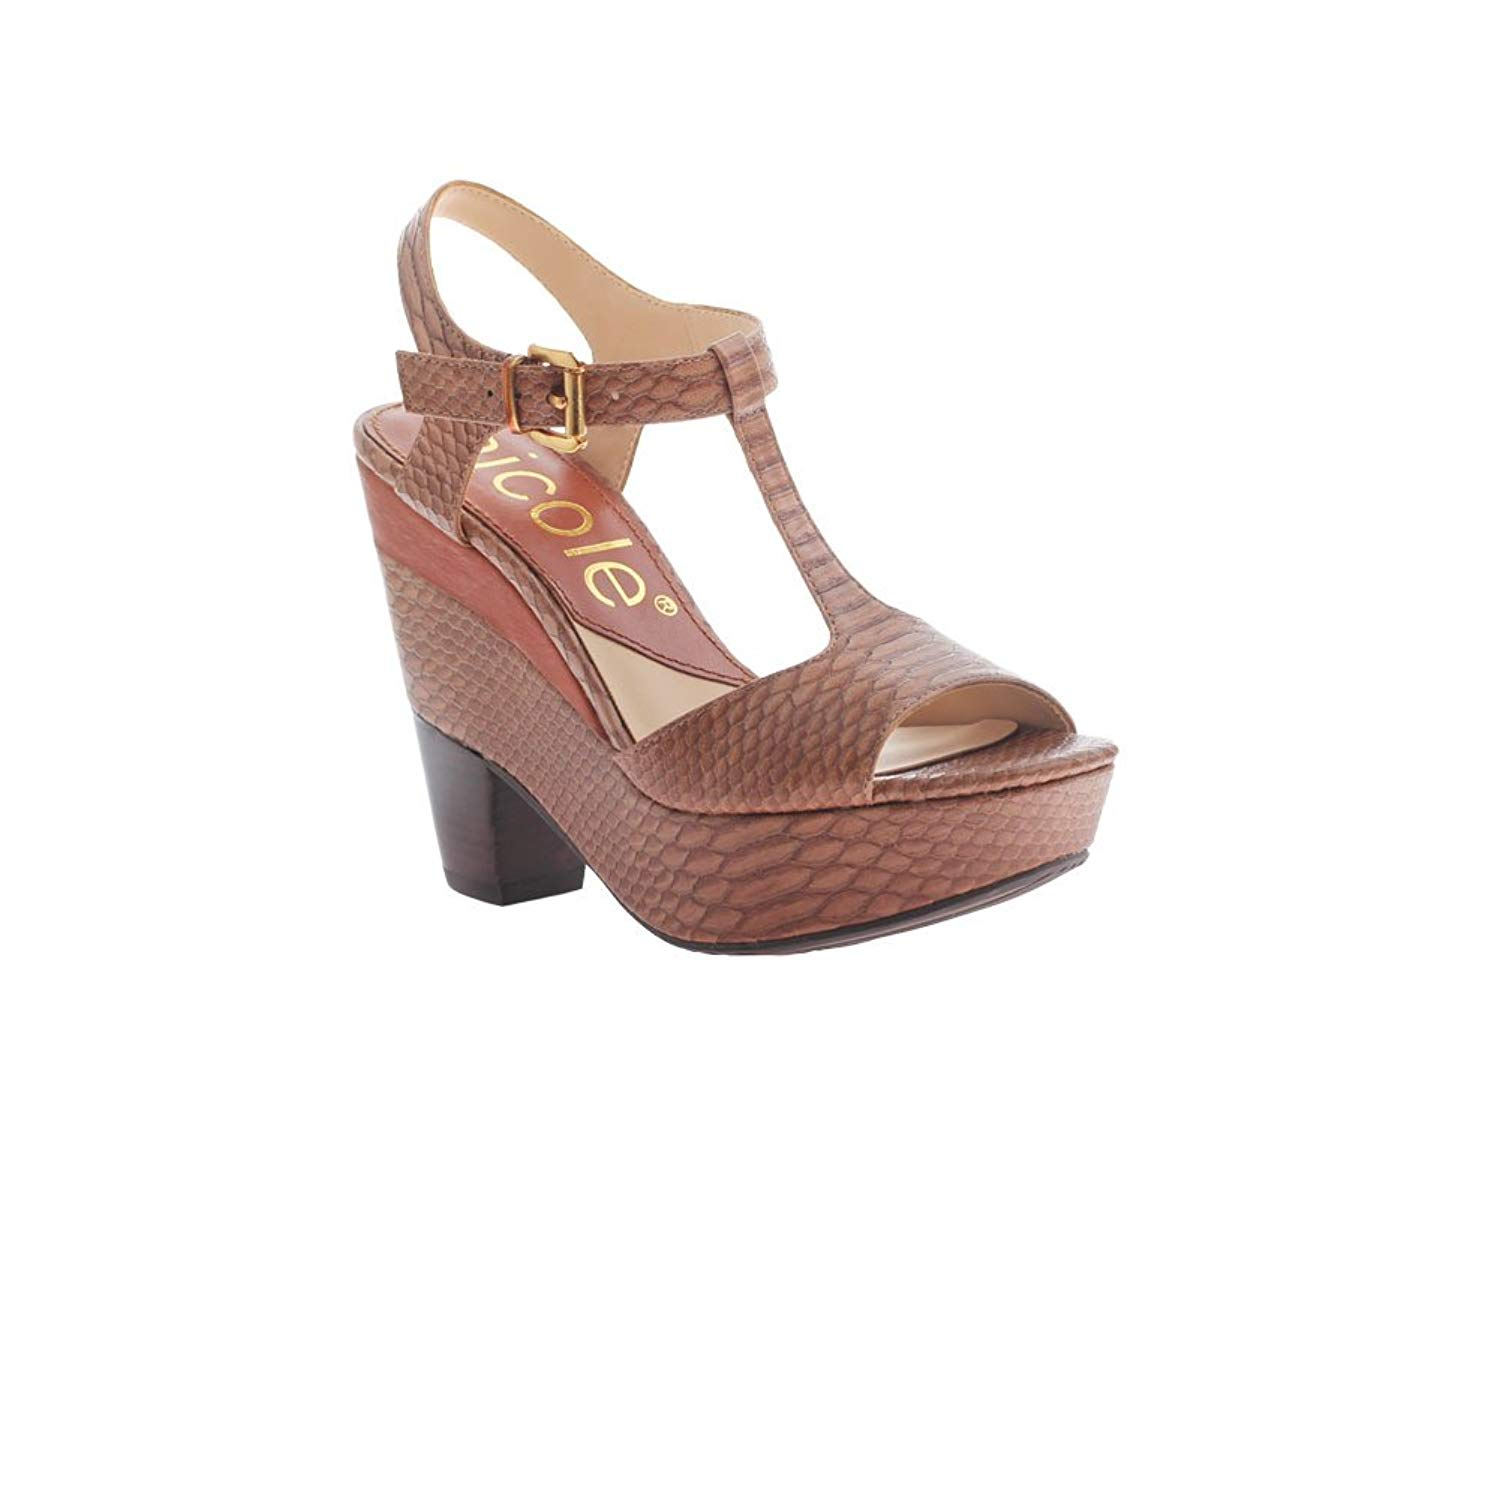 dc4fc7d93a9 Get Quotations · nicole Women s Gerry Wedge Sandal